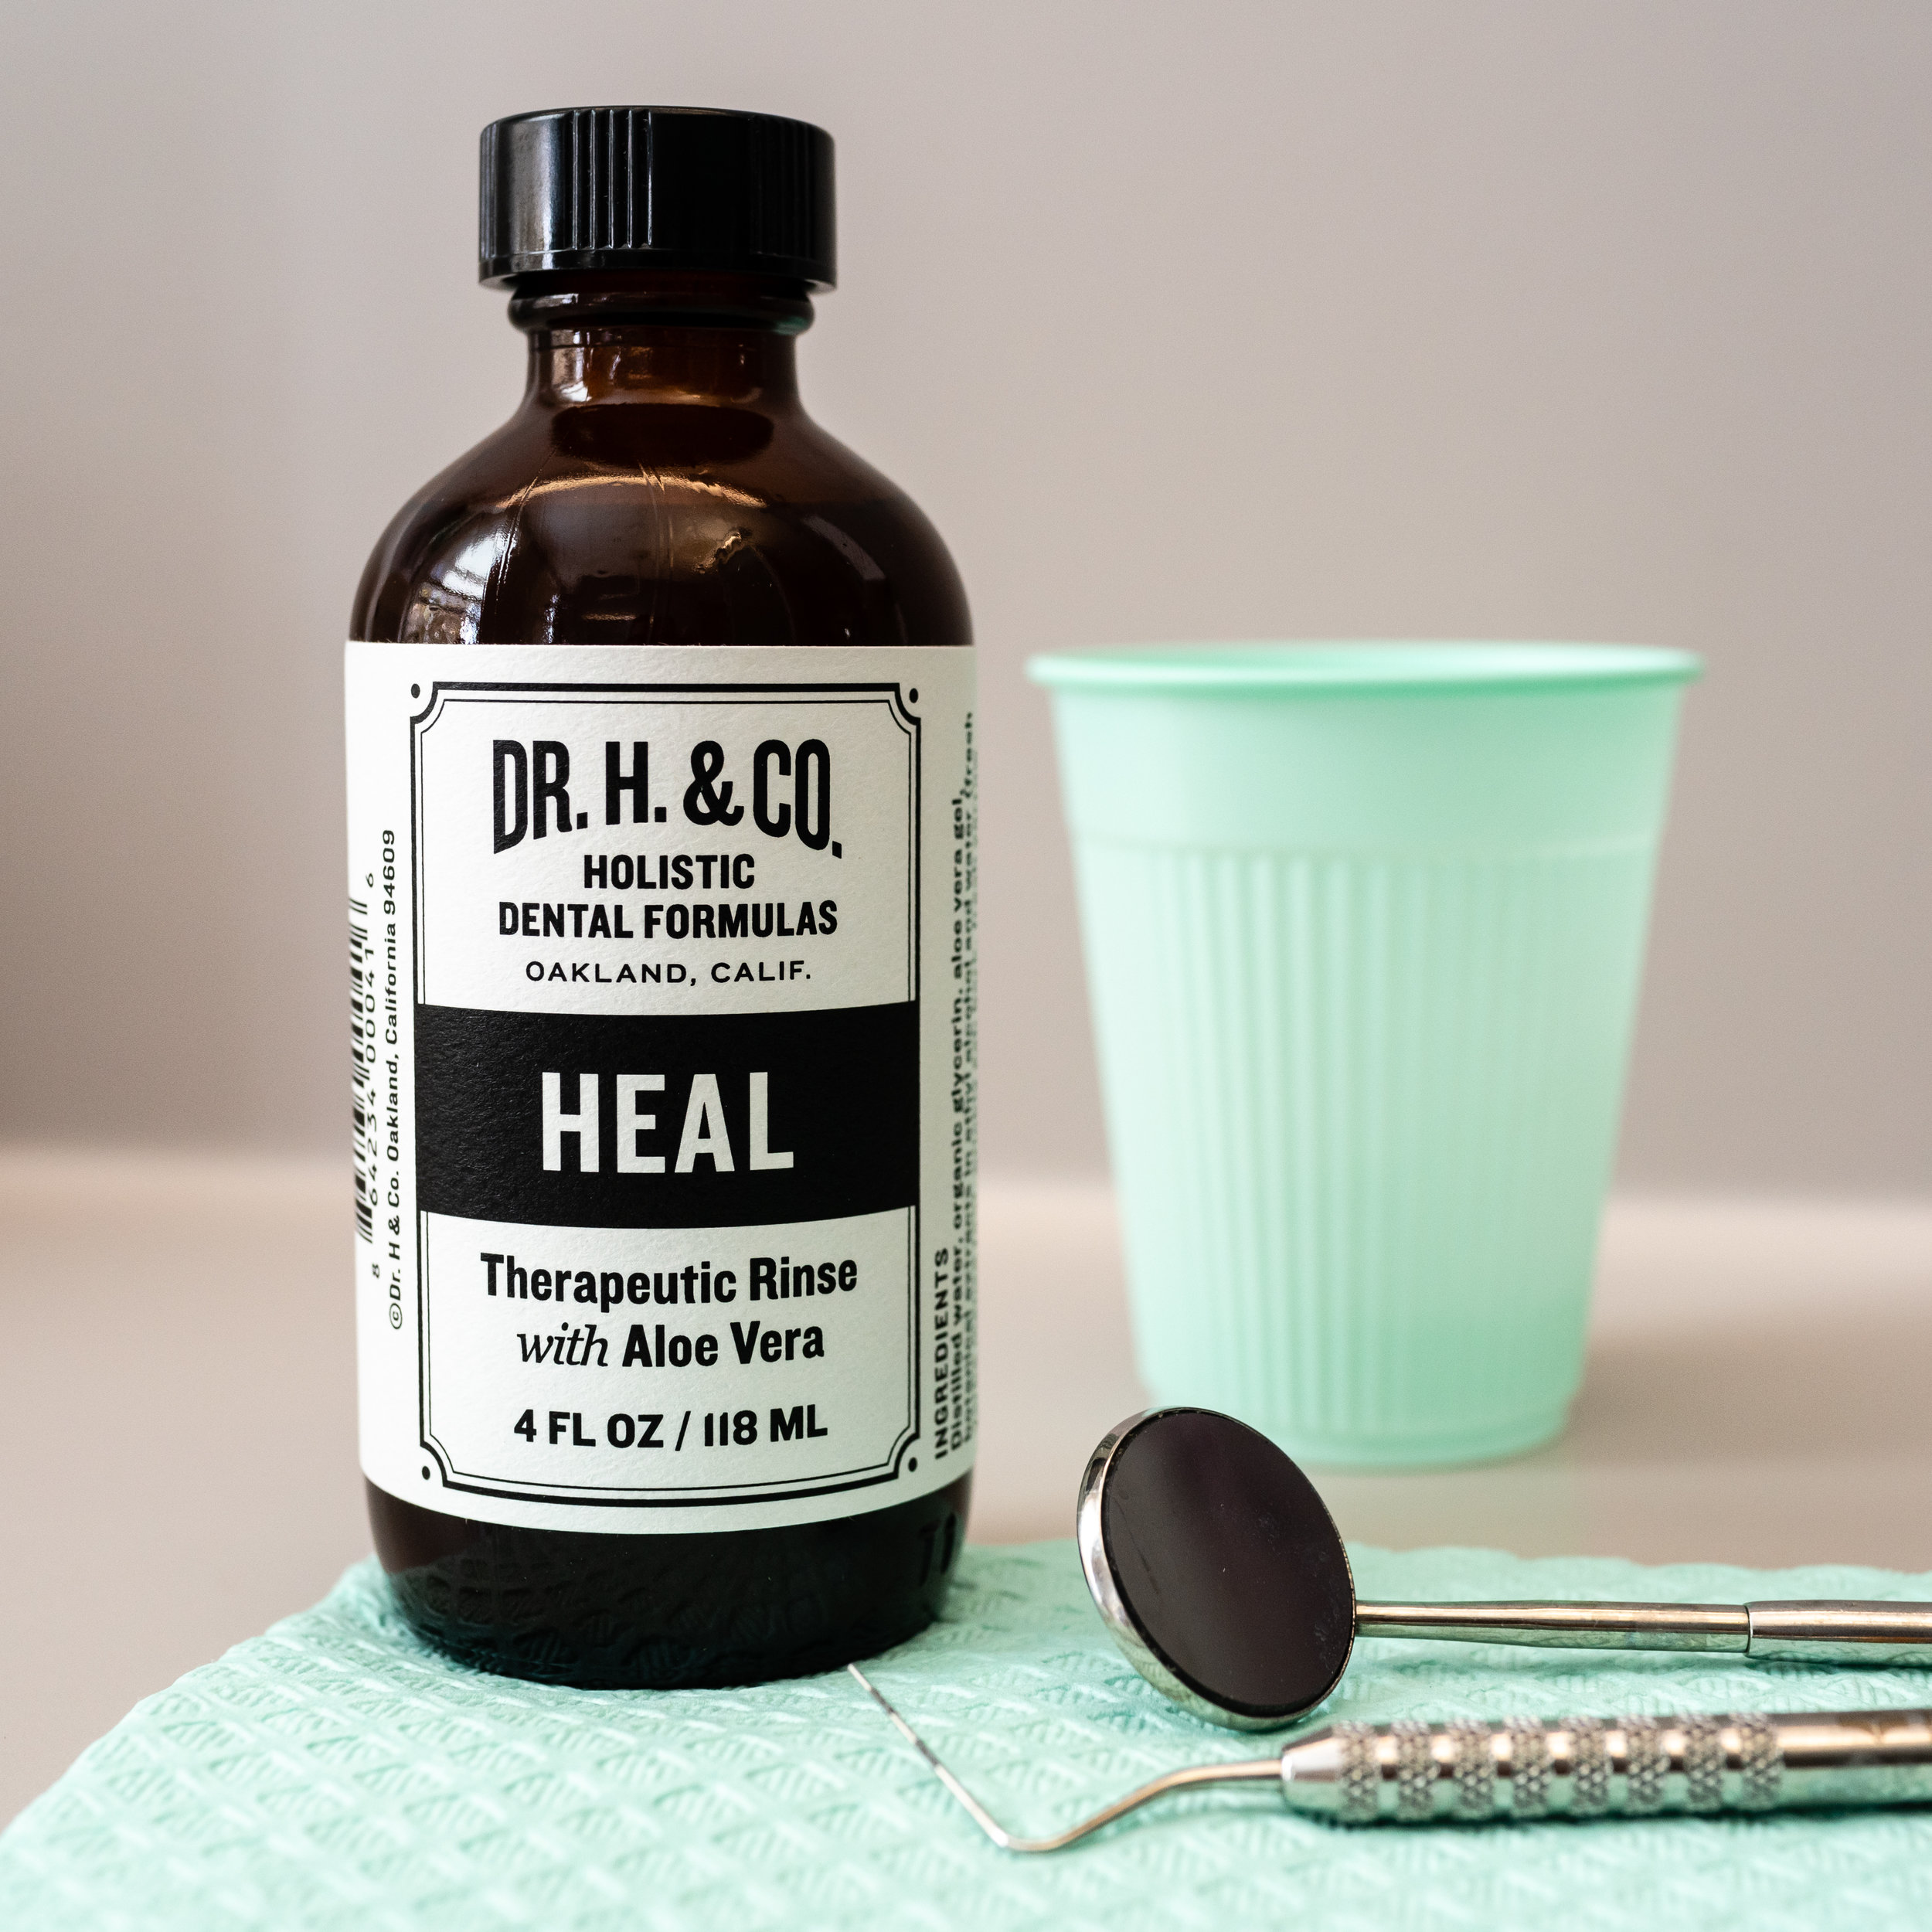 Heal Therapeutic Mouth Rinse - All Natural & Professional Strength Mouth Rinse for Gum Health